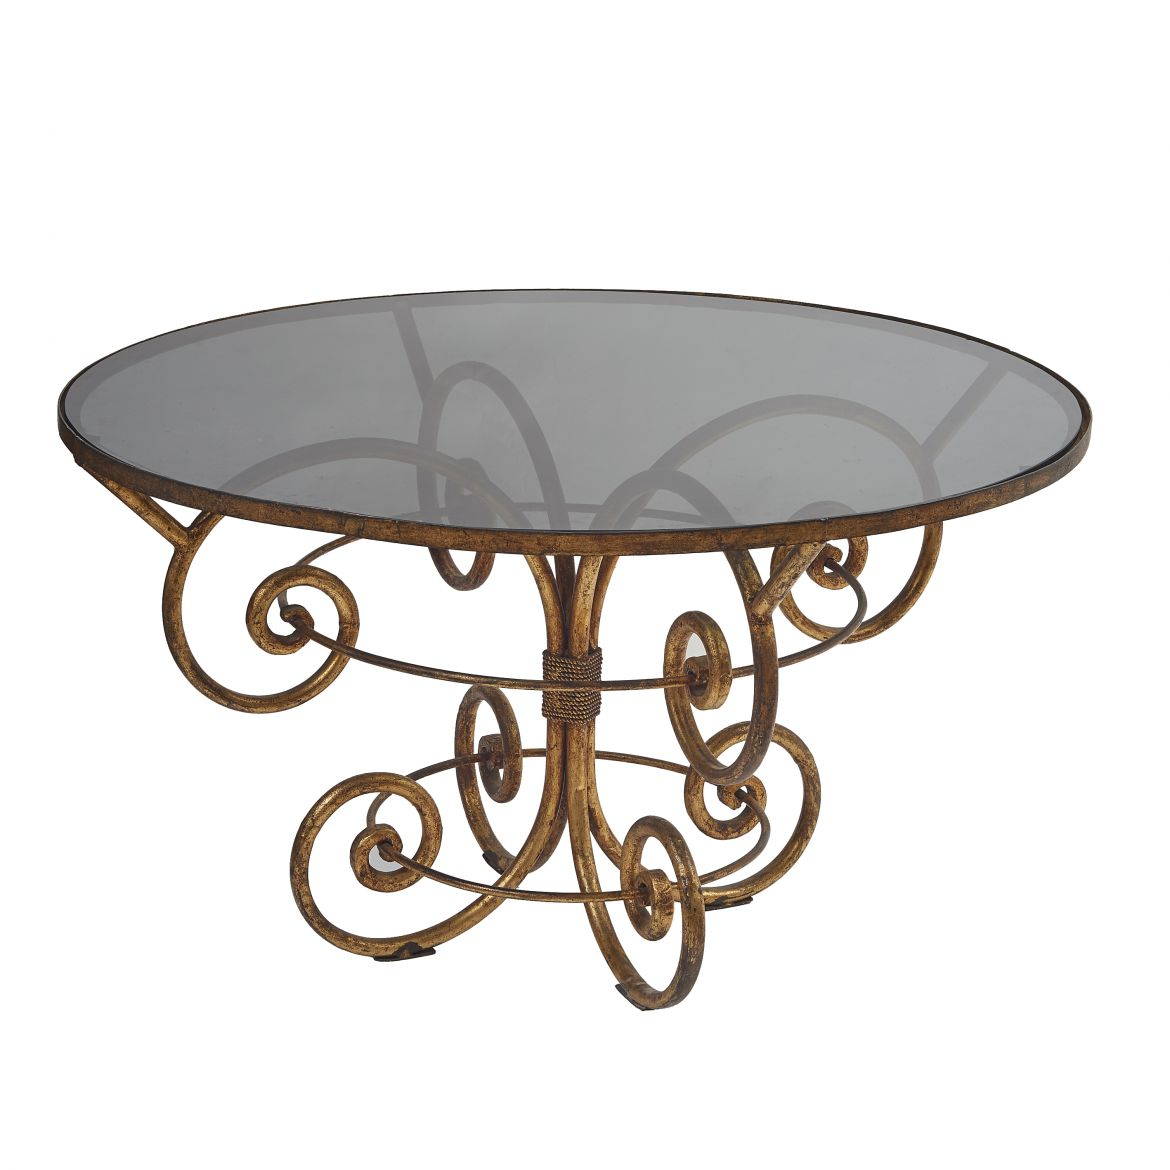 Gilded Iron Centre Table